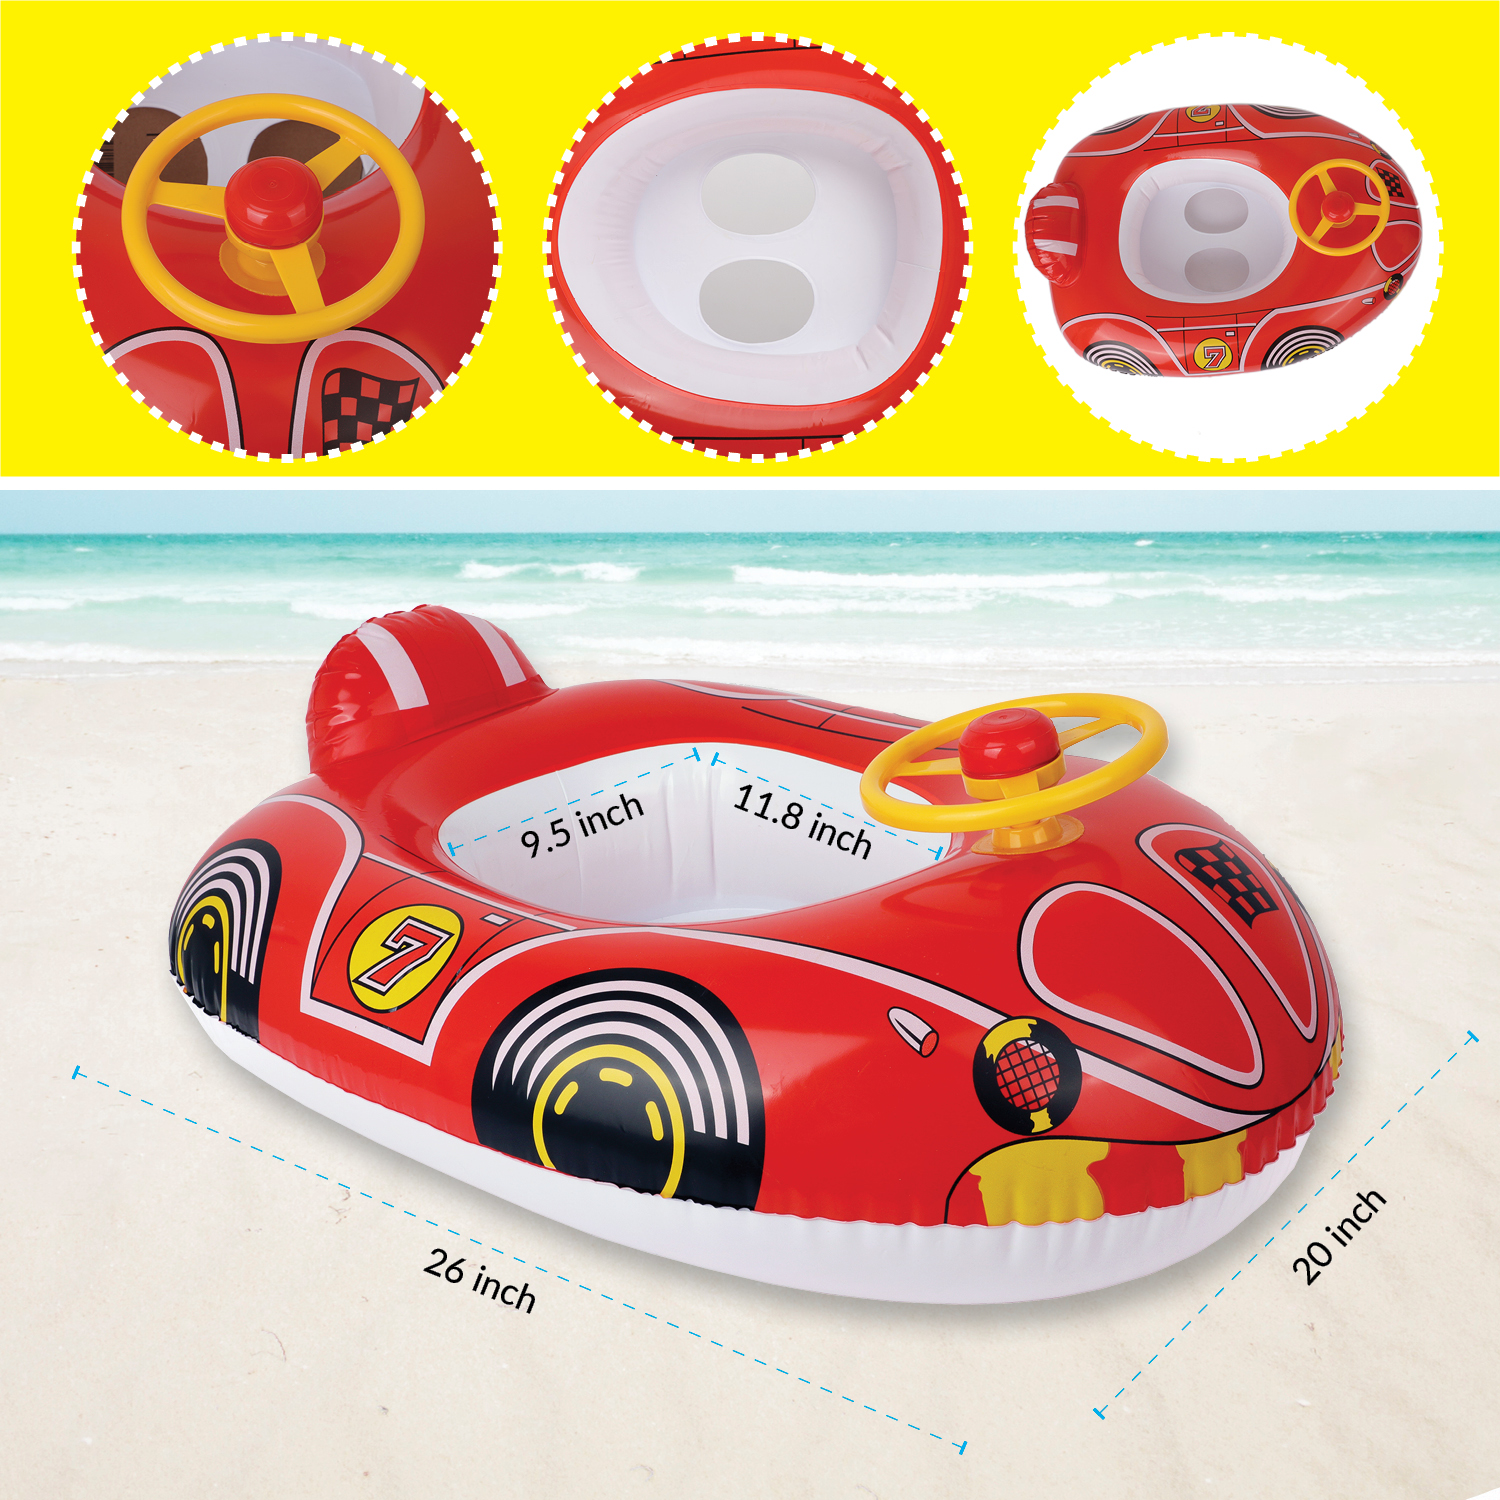 Fire Truck aquablu Inflatable Baby Seat 24 Yellow Summertime Safety Float for Pool Beach Lake Bay /& More Comfortable Floating Support /& Solid Bottom for Toddlers Ages 1-2 Years